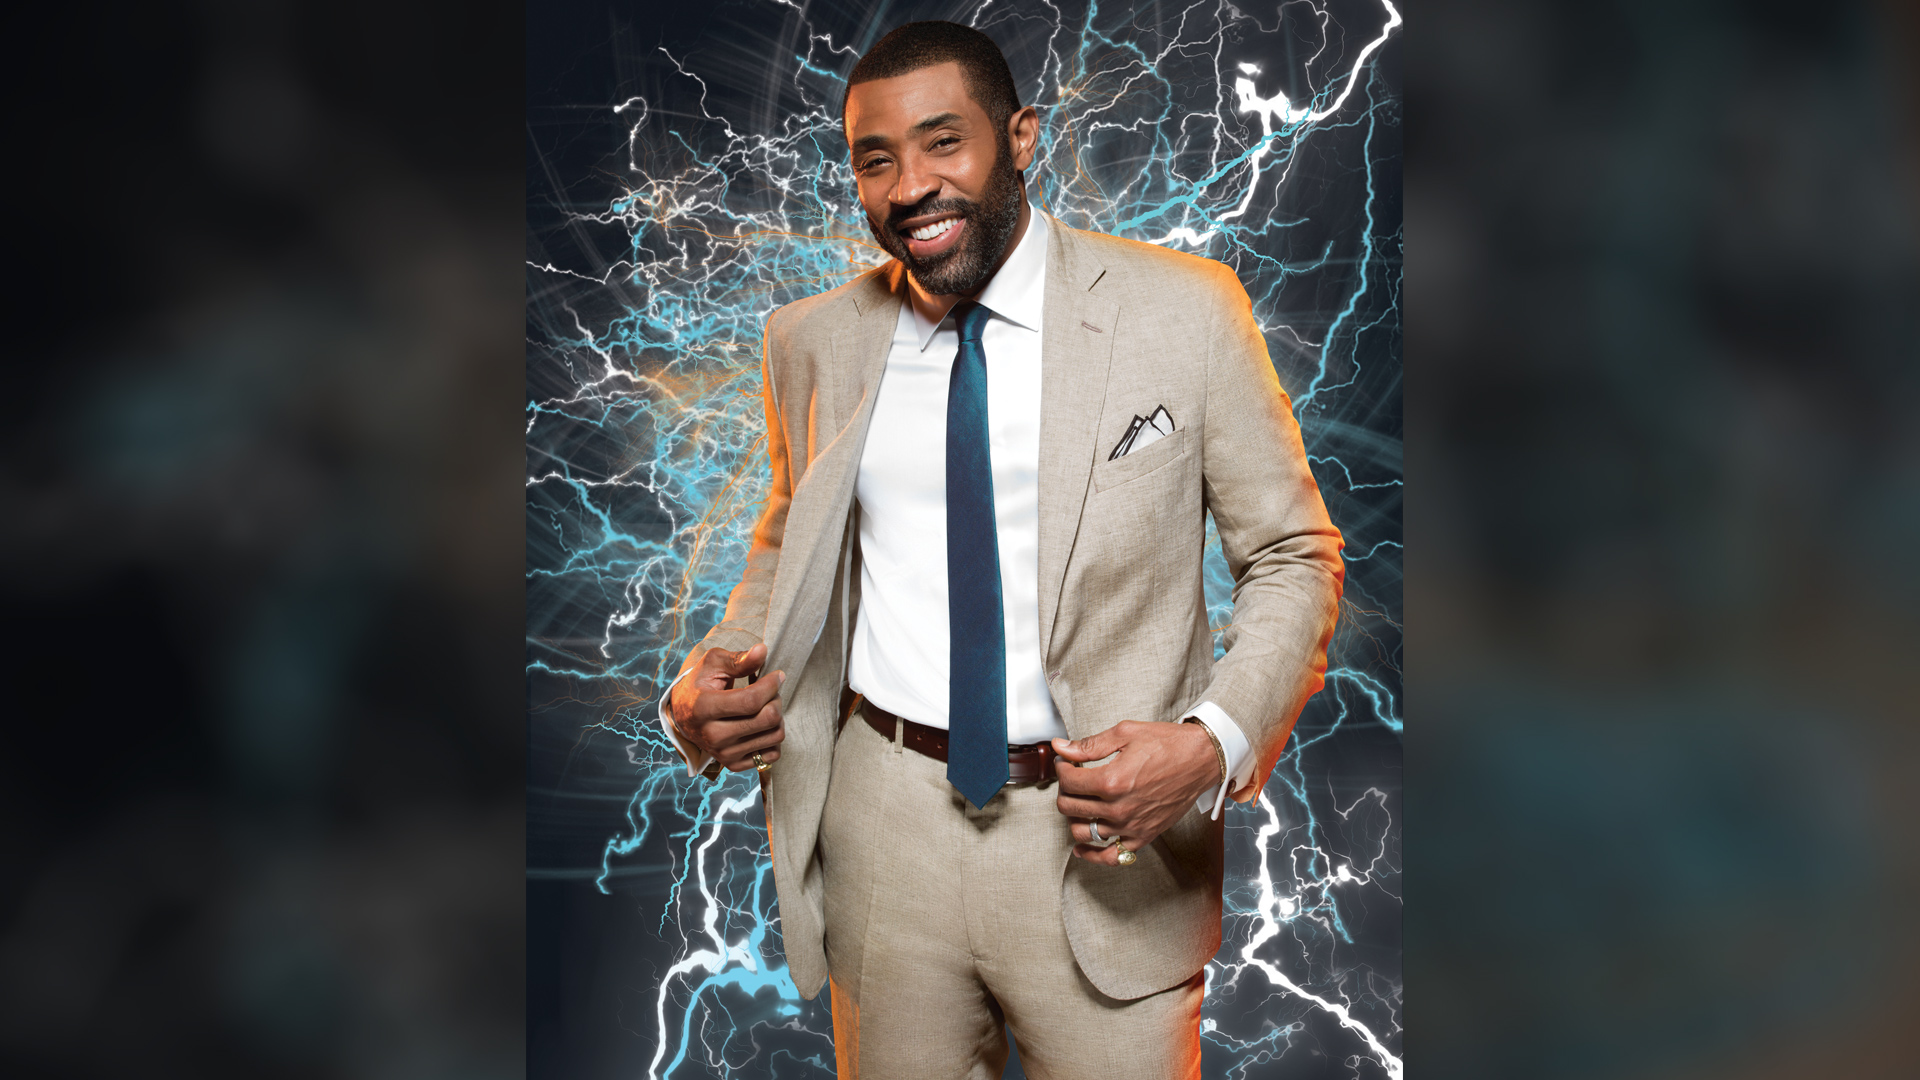 Black Lightning star Cress Williams is the superhero we've been waiting for.